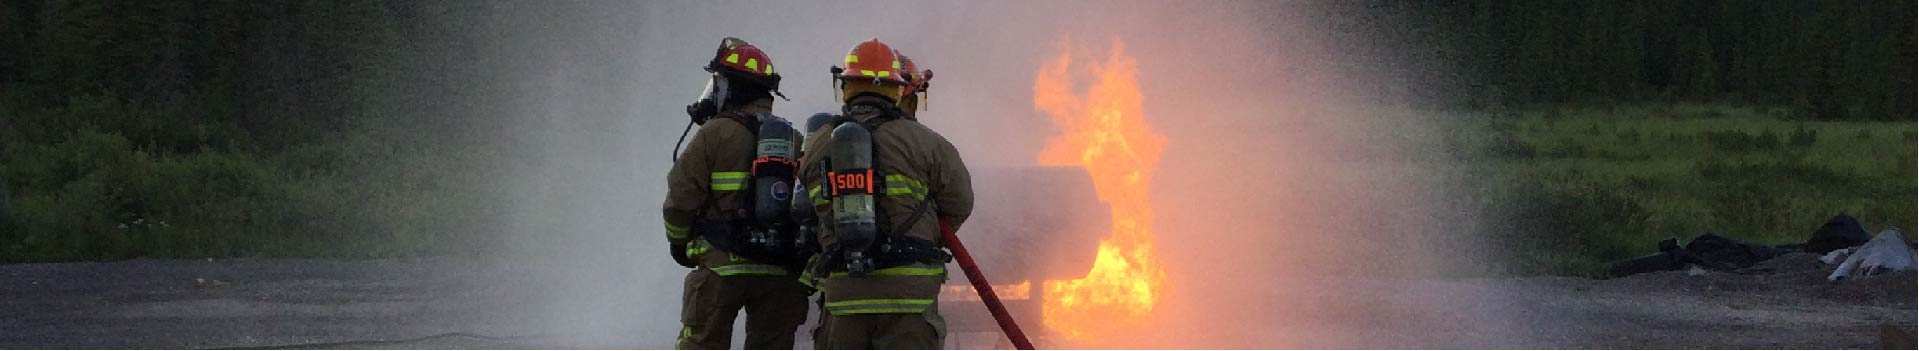 About CRFRS -